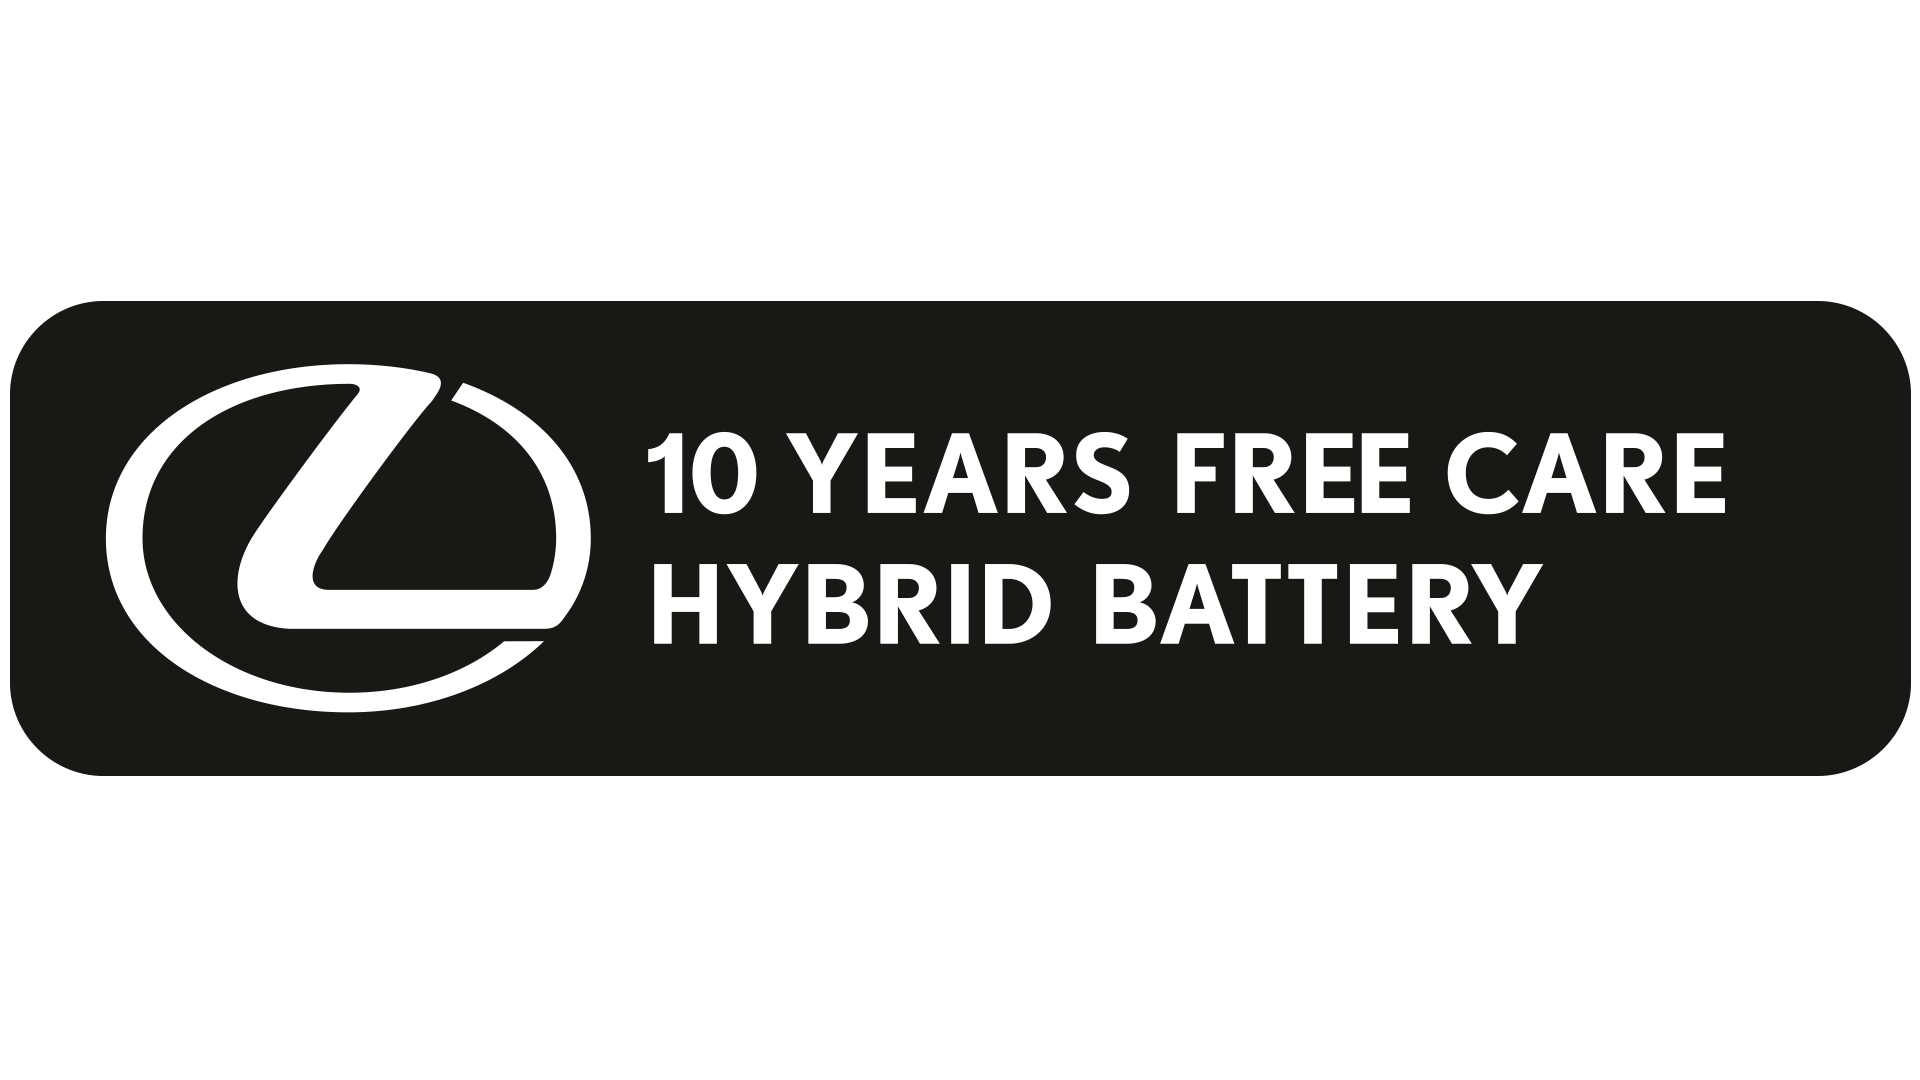 Free care Hybrid battery